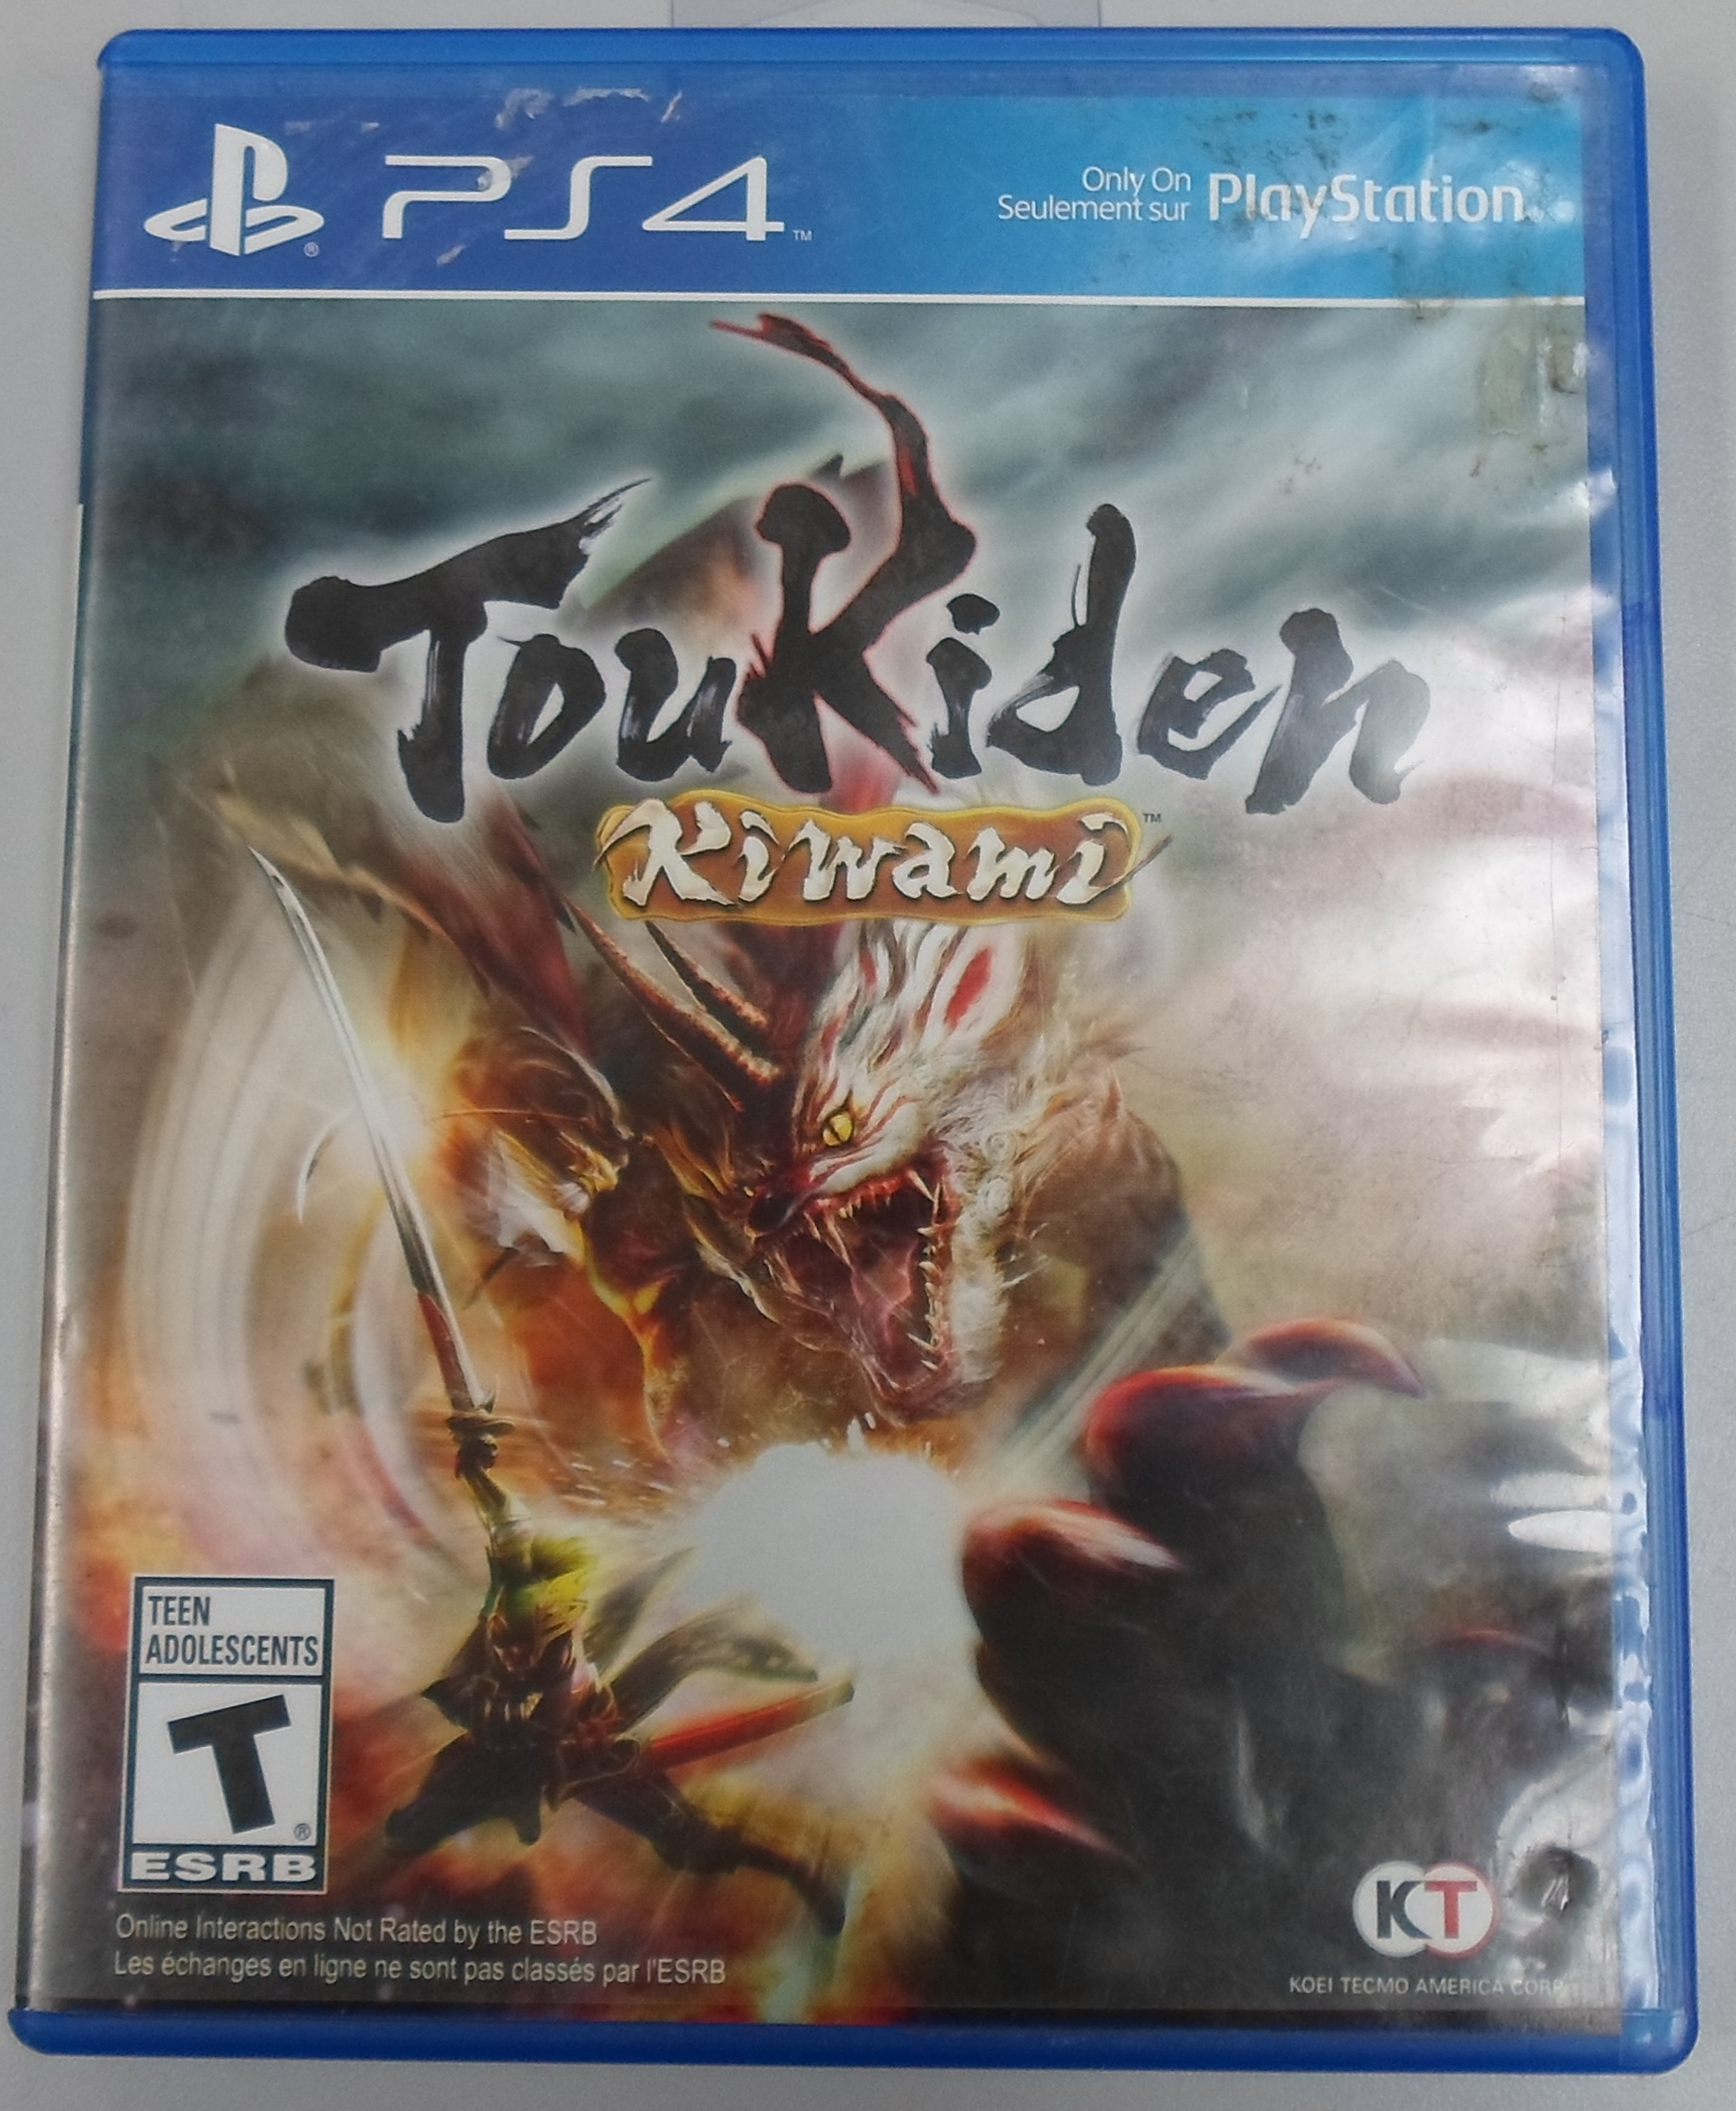 TOUKIDEN KIWAMI - PS4 GAME